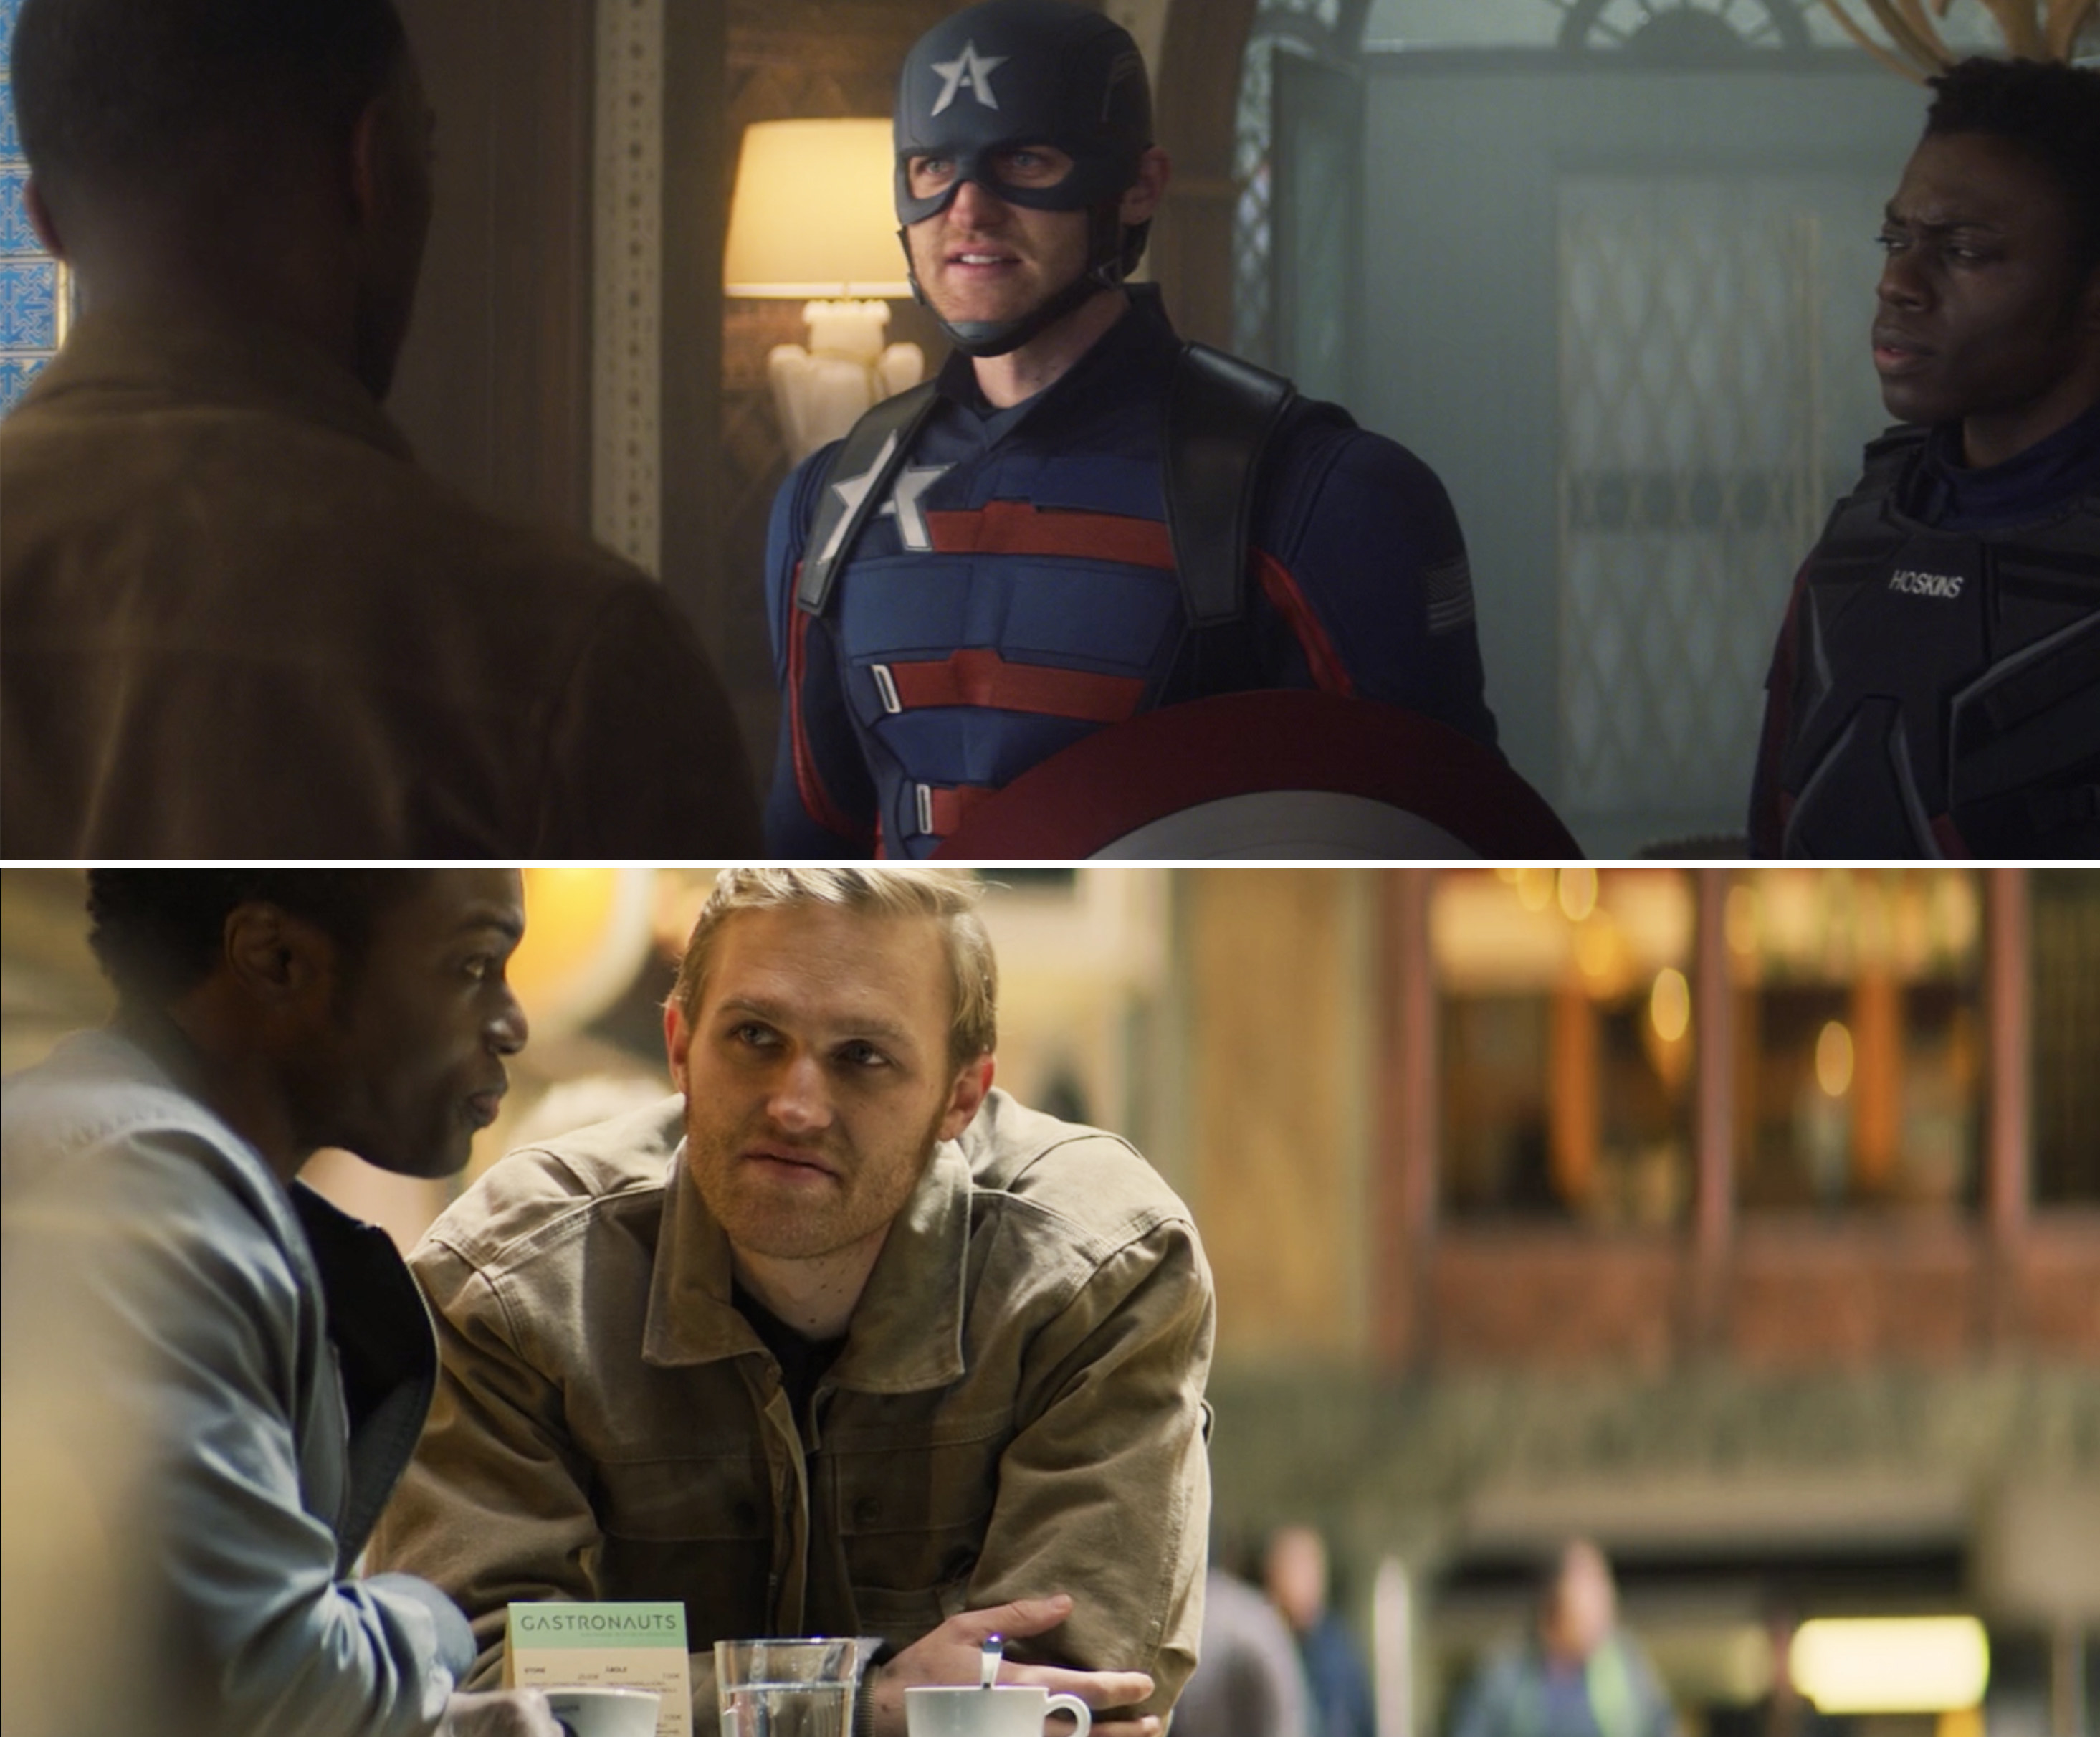 Wyatt in his Captain America costume and civilian clothes while with Battlestar